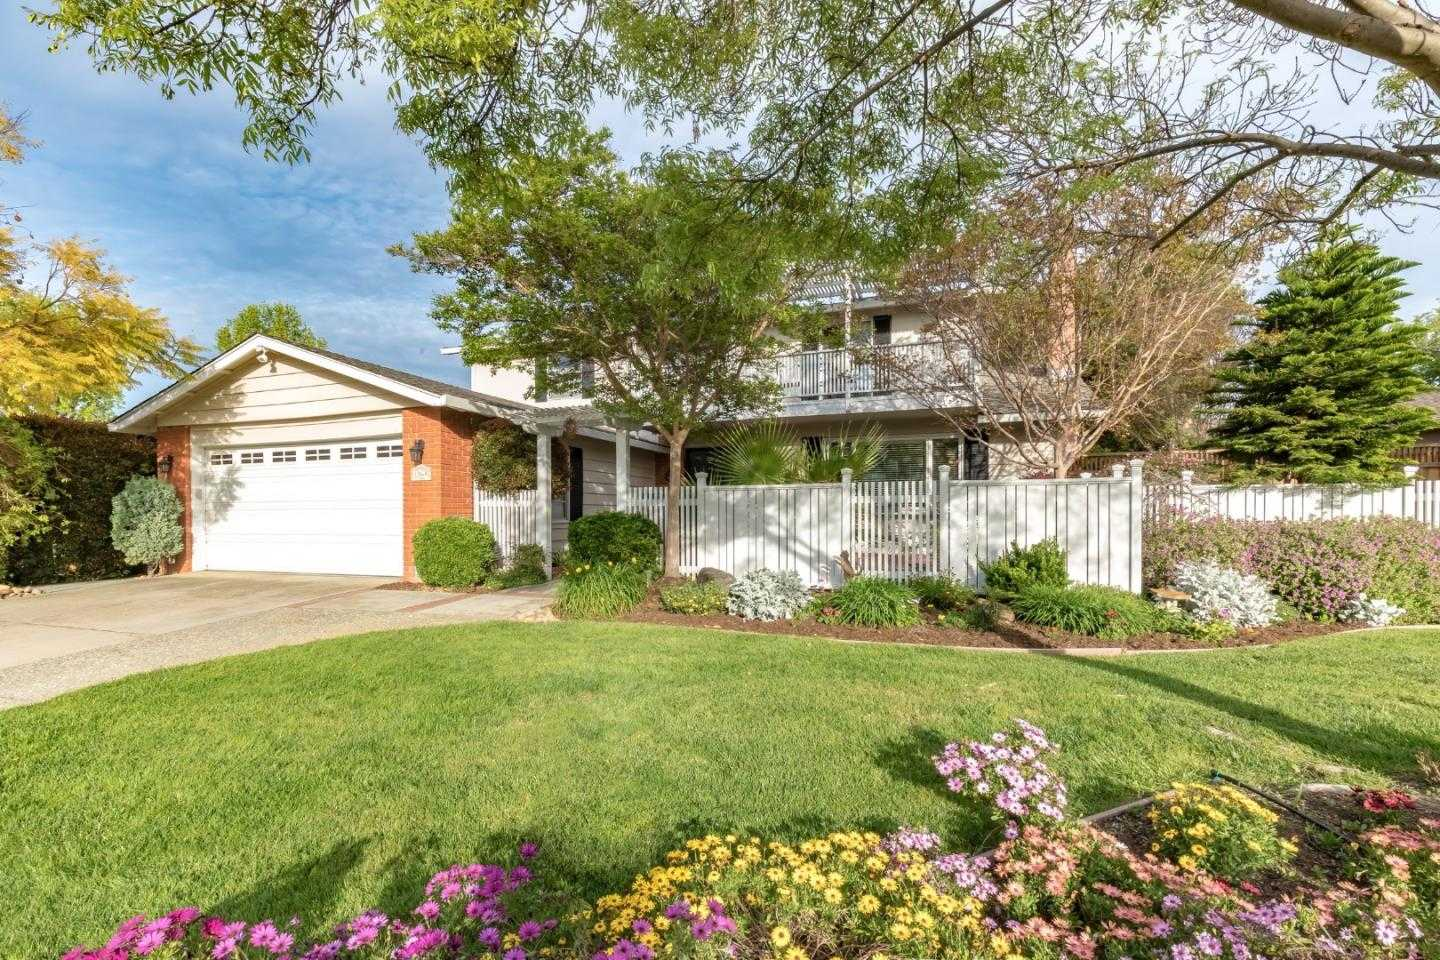 $2,388,000 - 4Br/3Ba -  for Sale in Sunnyvale